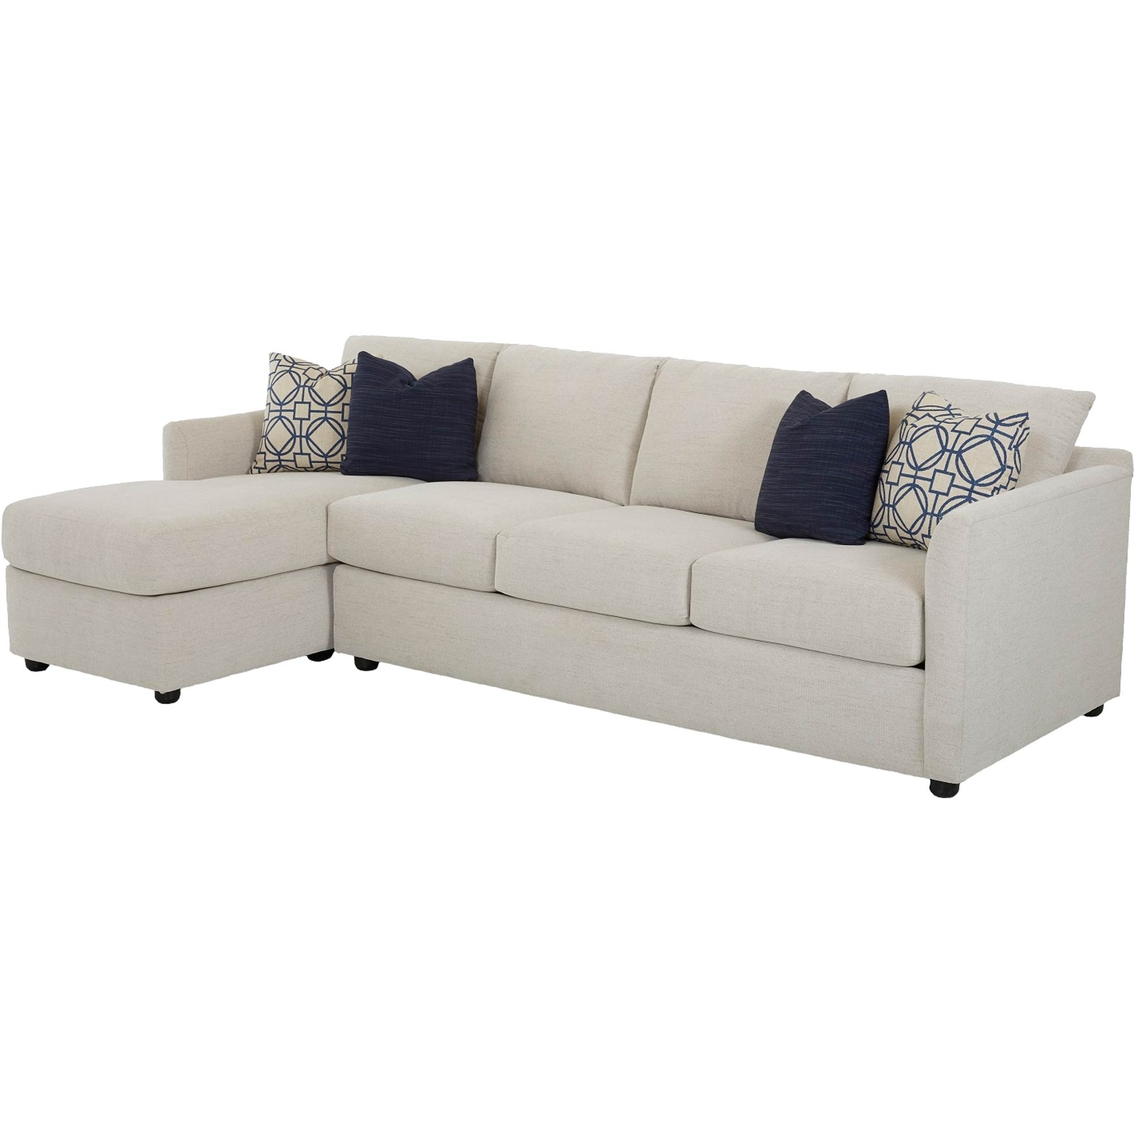 Sectional Corner Couch Klaussner Atlanta 2 Pc Sectional Raf Queen Sleeper Laf Corner